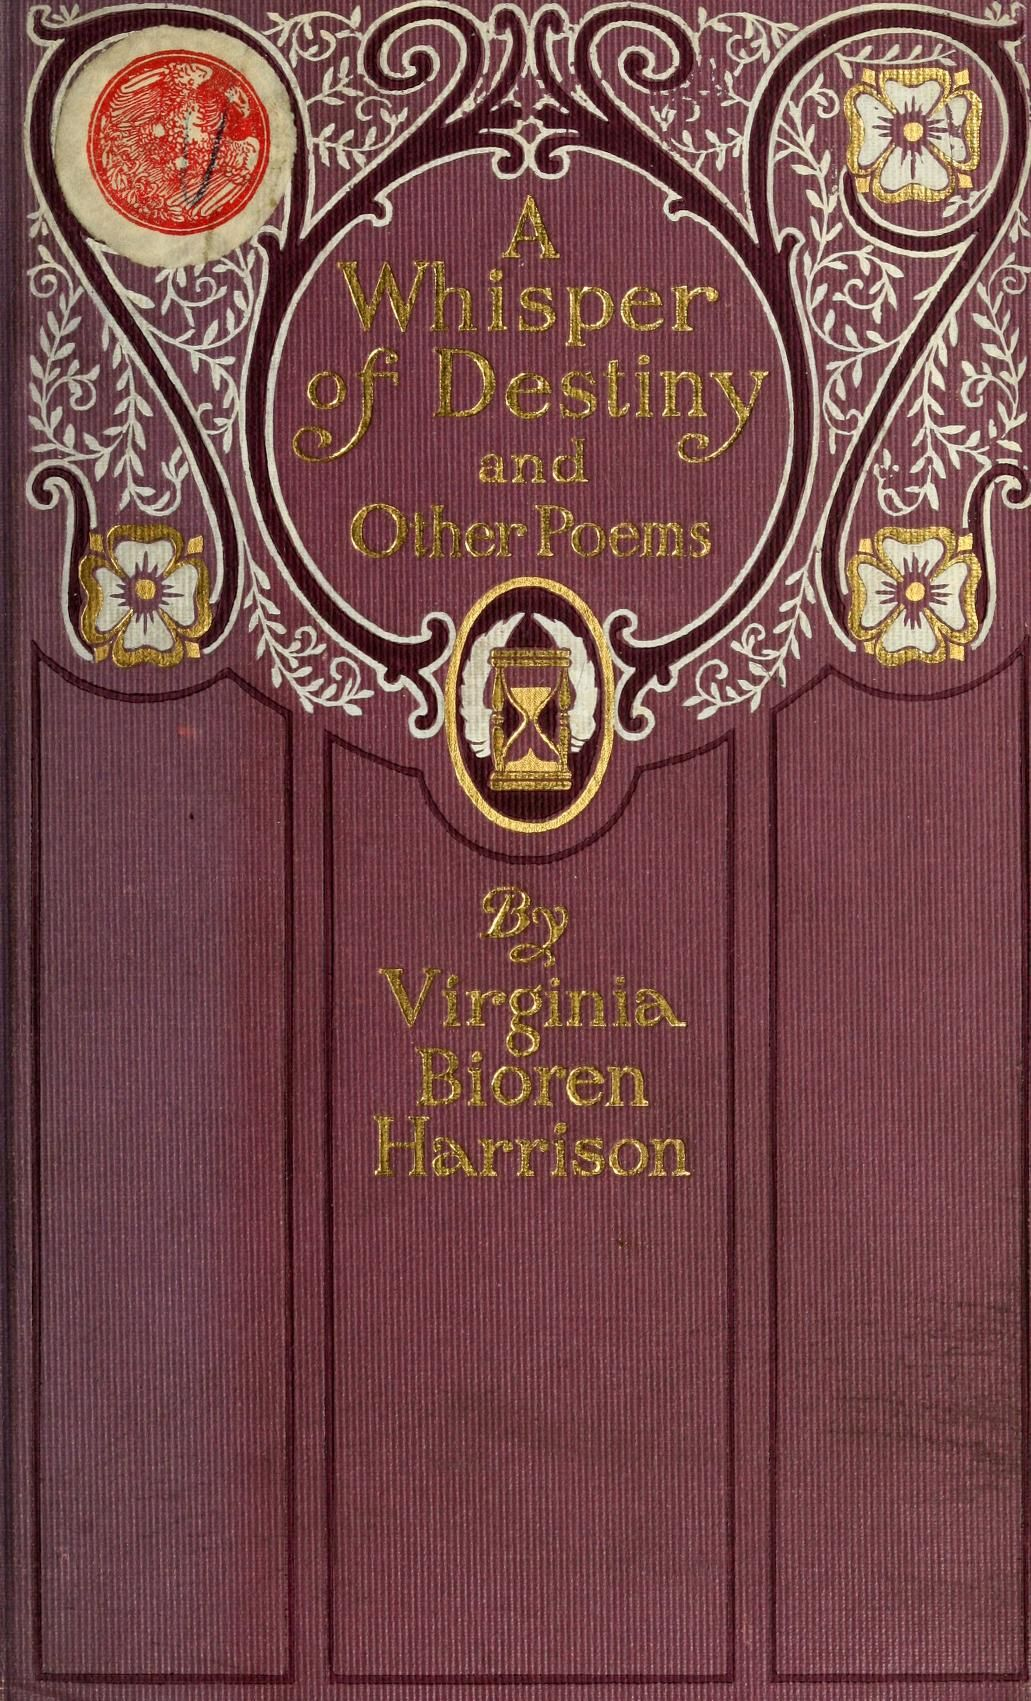 A Whisper Of Destiny And Other Poems by Virginia Bioren Harrison (1 ...